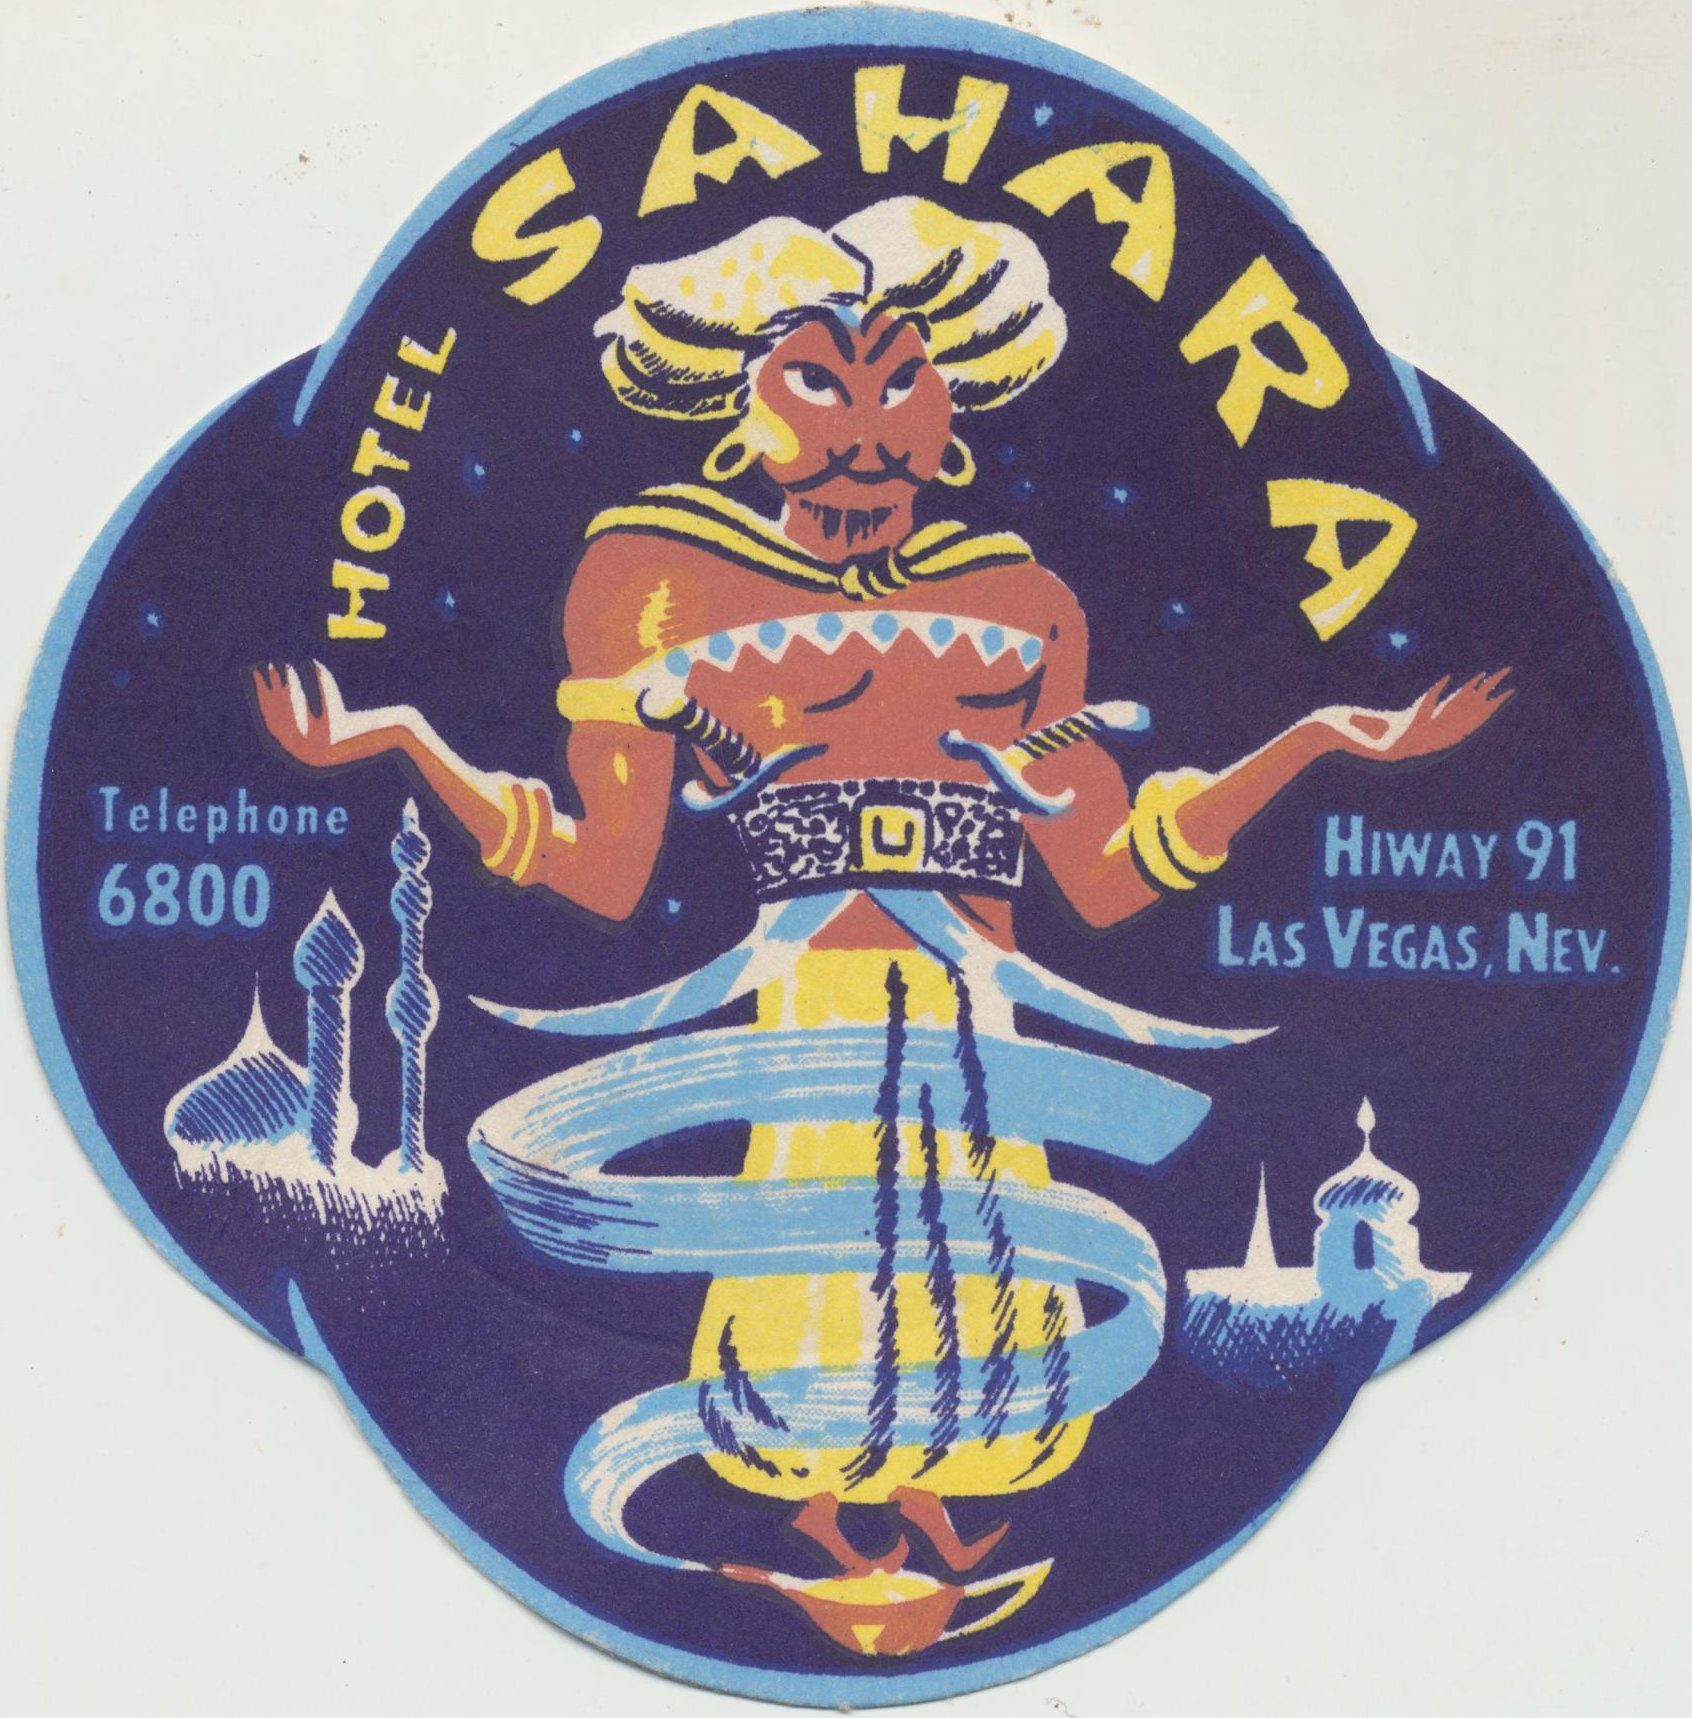 Hotel Sahara coaster - Las Vegas, Nevada U.S.A. - date unknown